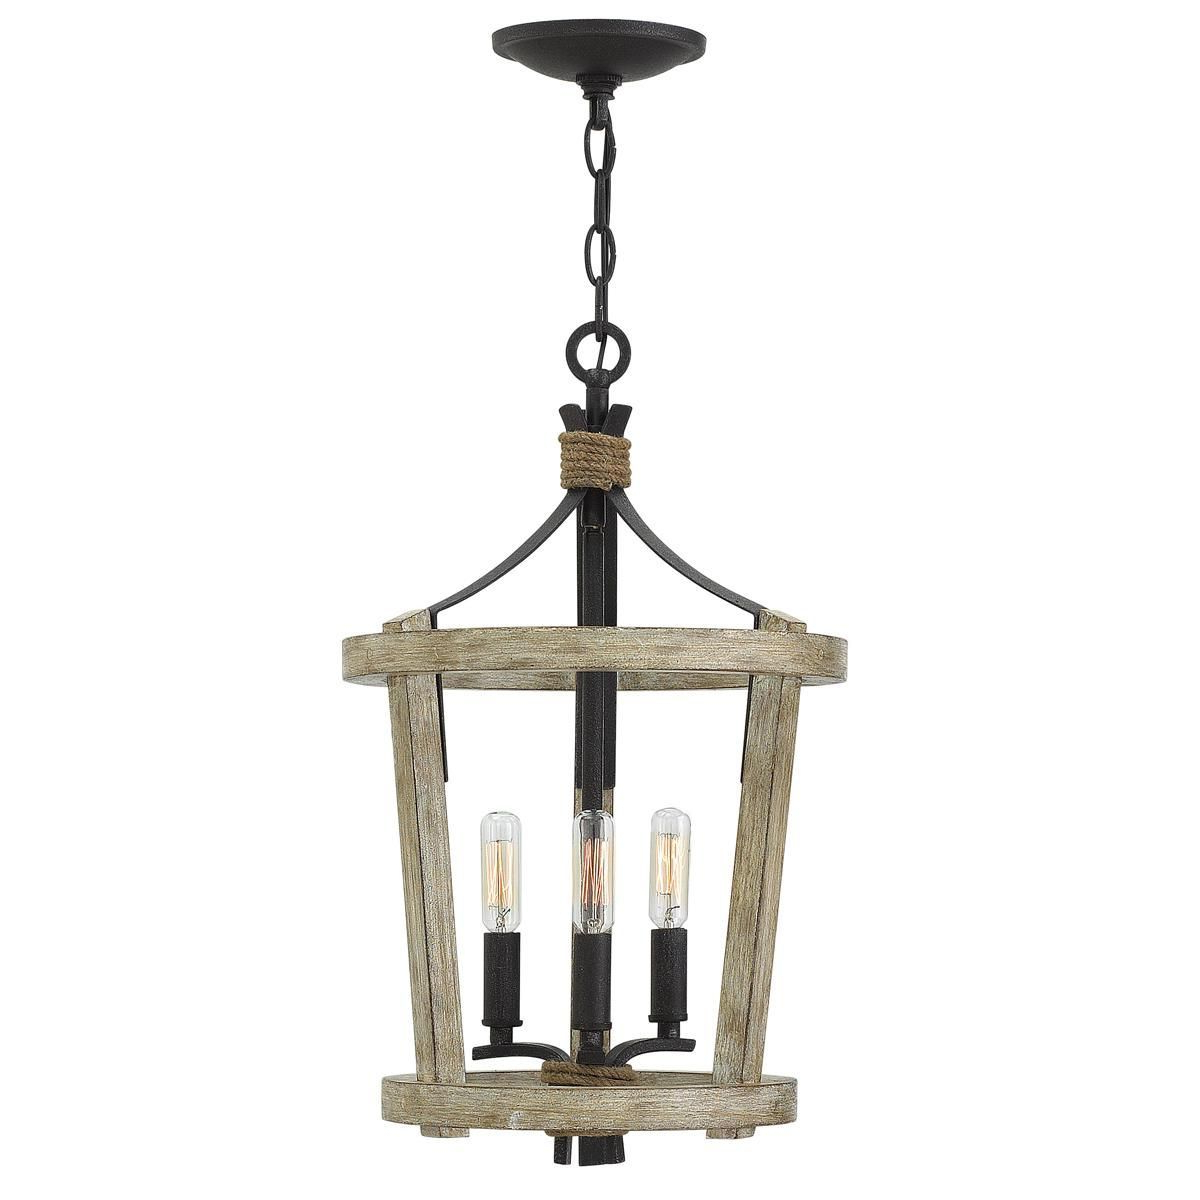 Chauvin 3 Light Lantern Geometric Pendants Intended For Trendy Wonderful Useful Tips: Rustic Wallpaper Wallpapers Rustic (View 7 of 20)